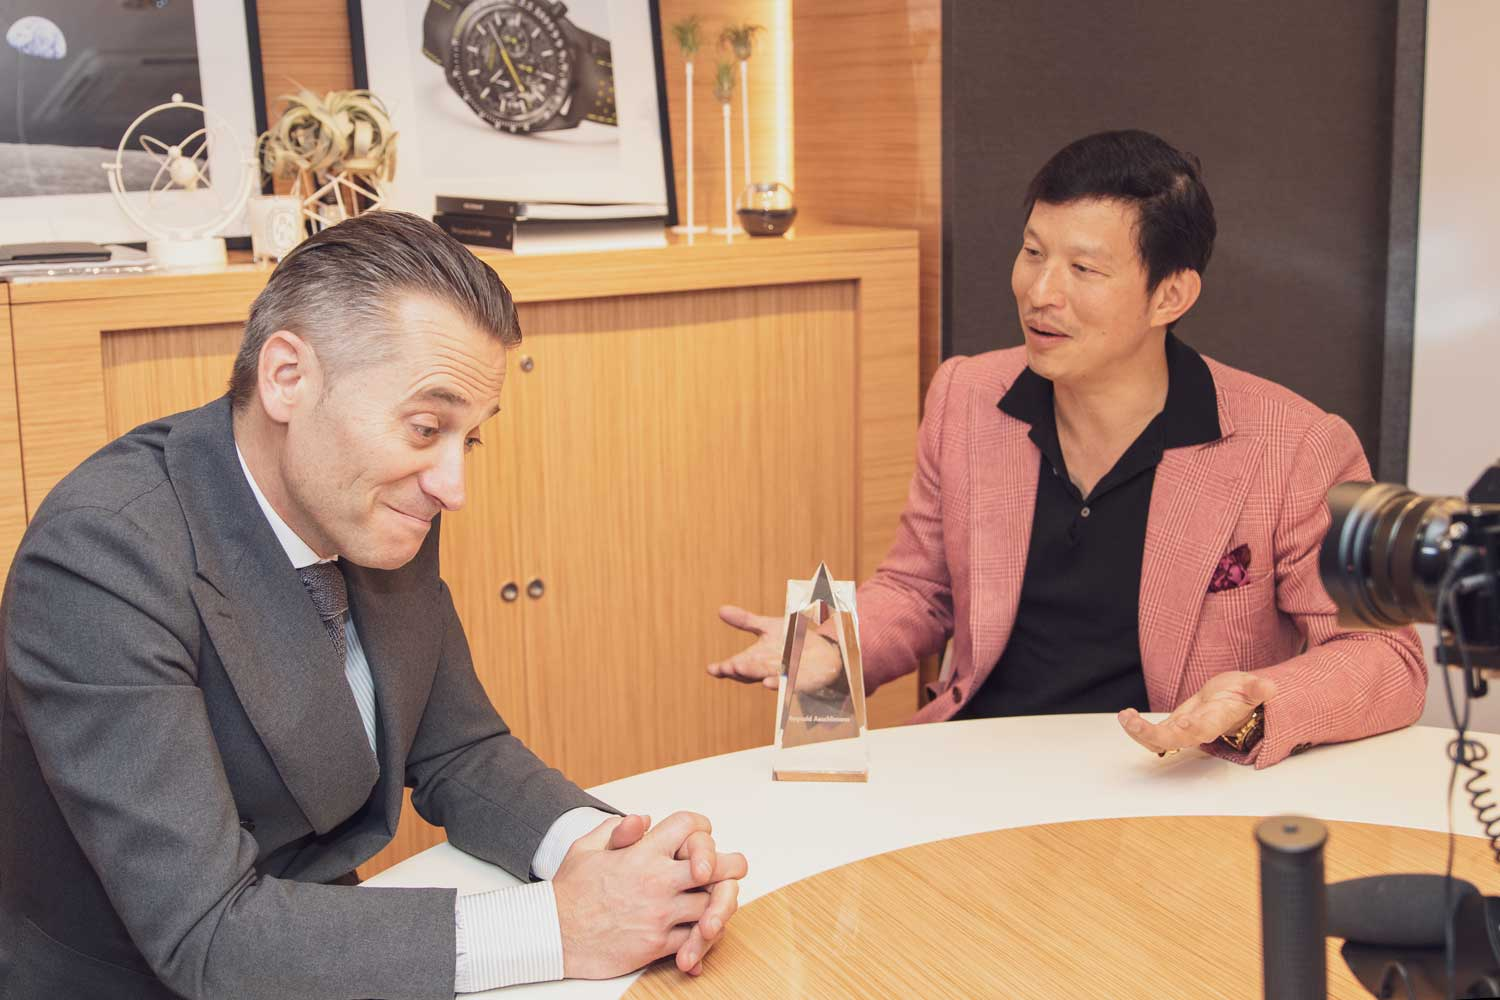 Wei with Raynald Aeschlimann, CEO of Omega at the brand's booth at Baselworld 2018 (Image © Revolution)